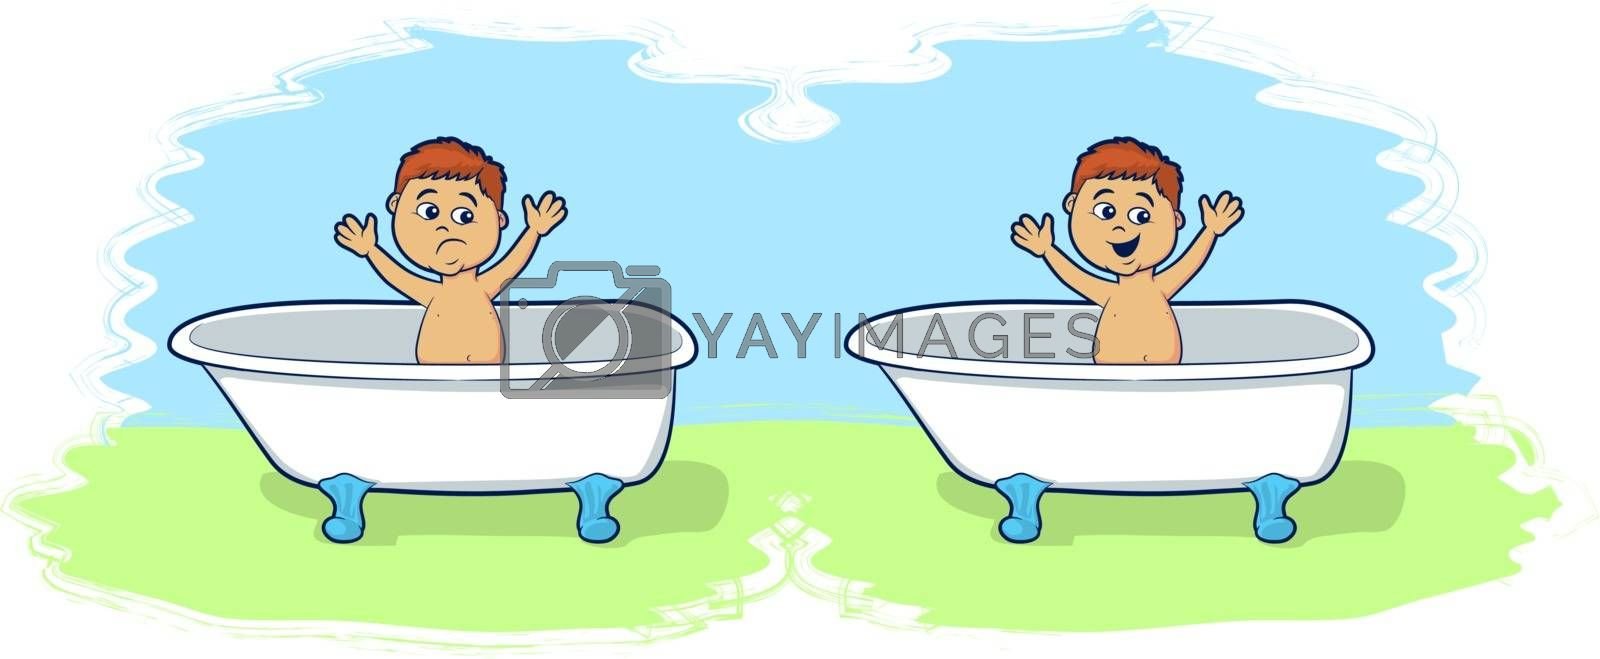 Royalty free image of Bath Time for Cartoon Boy by graphicgeoff